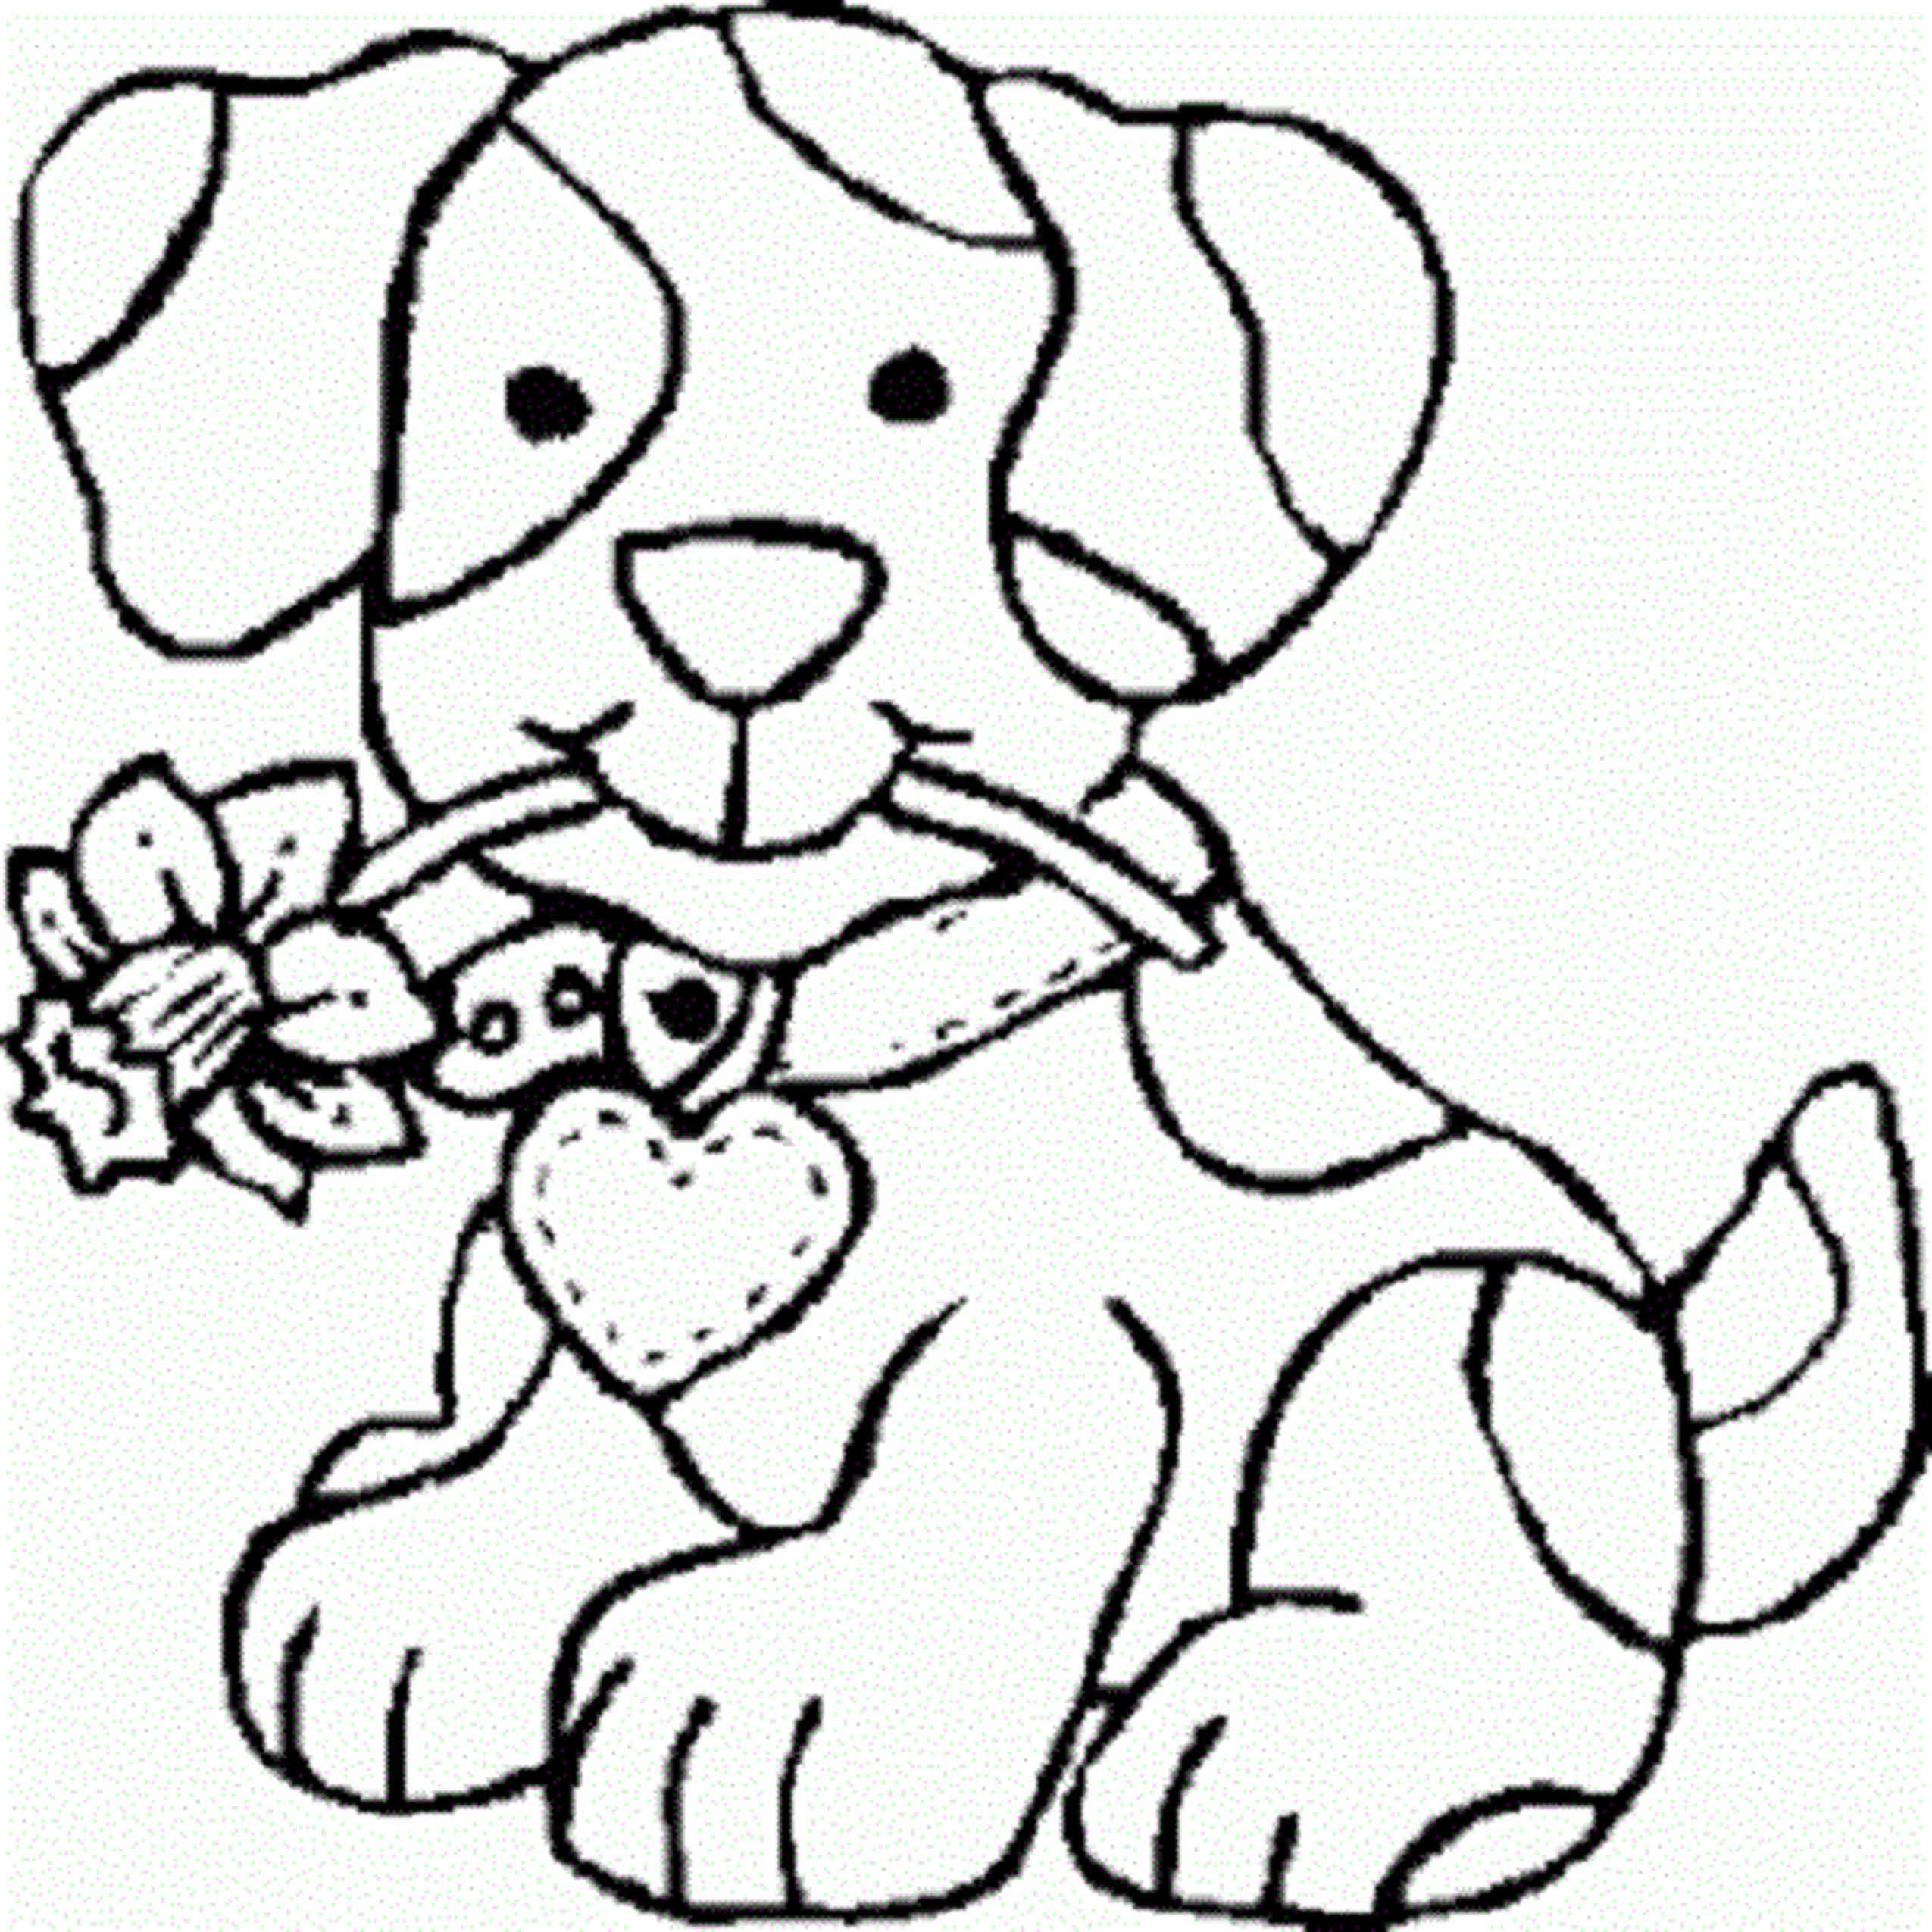 Full Size Printable Coloring Pages at GetDrawings.com | Free for ...